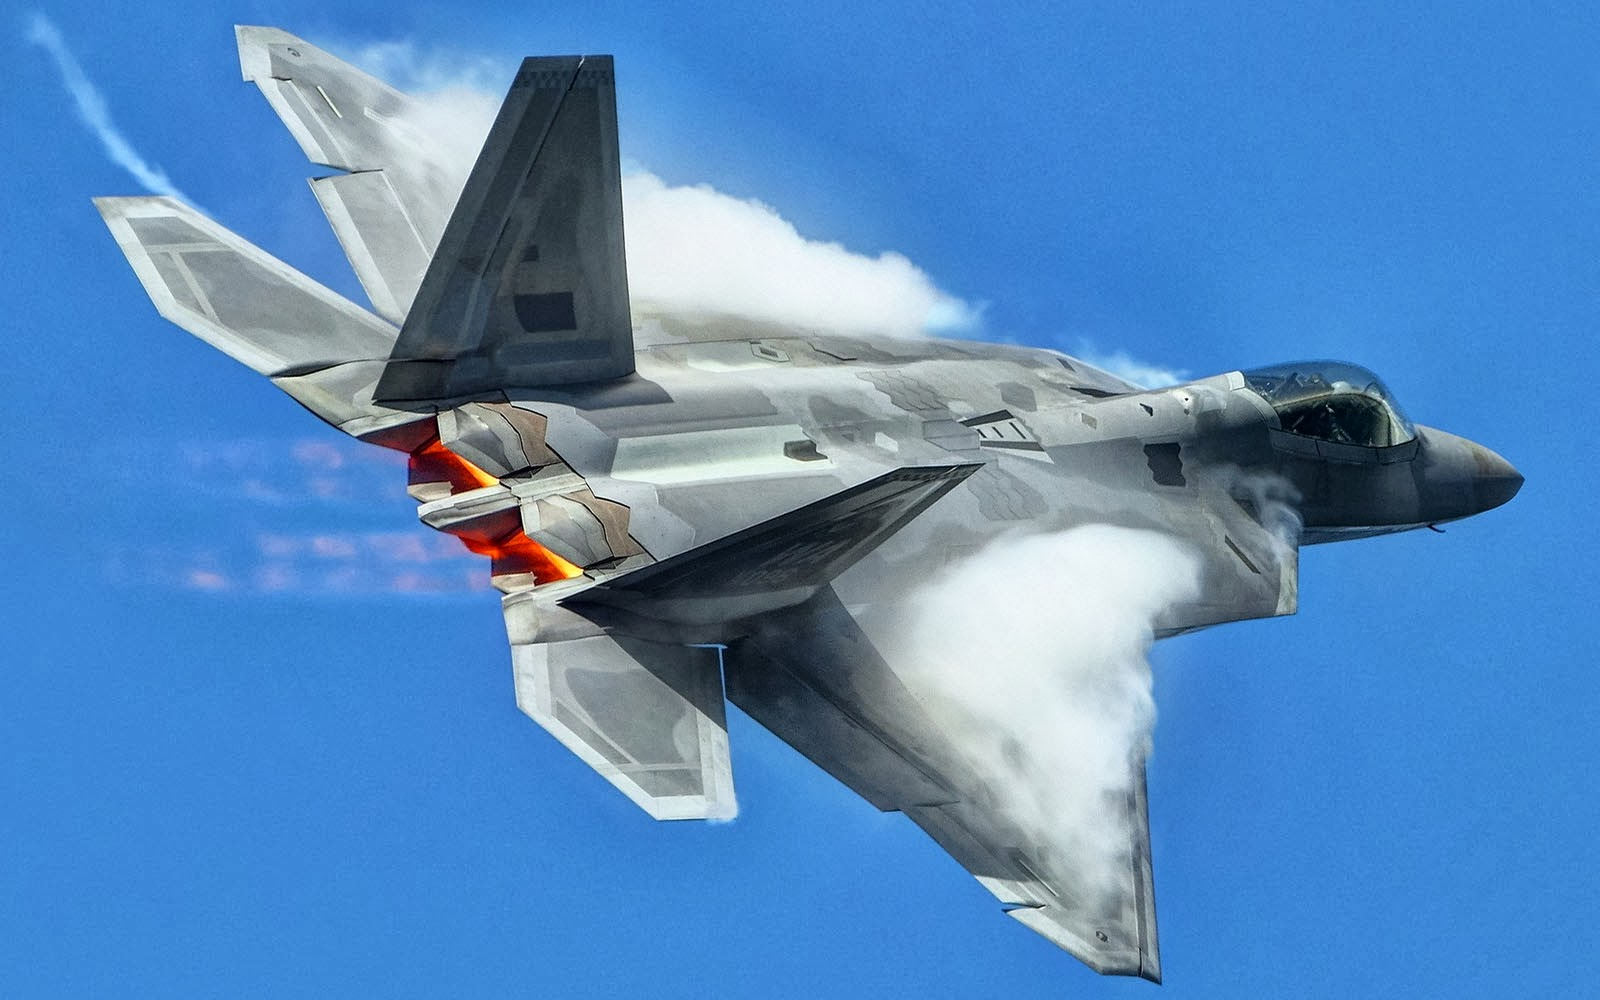 Wallpapers Lockheed Martin F 22 Raptor DesktopBackgrounds Lockheed 1600x1000